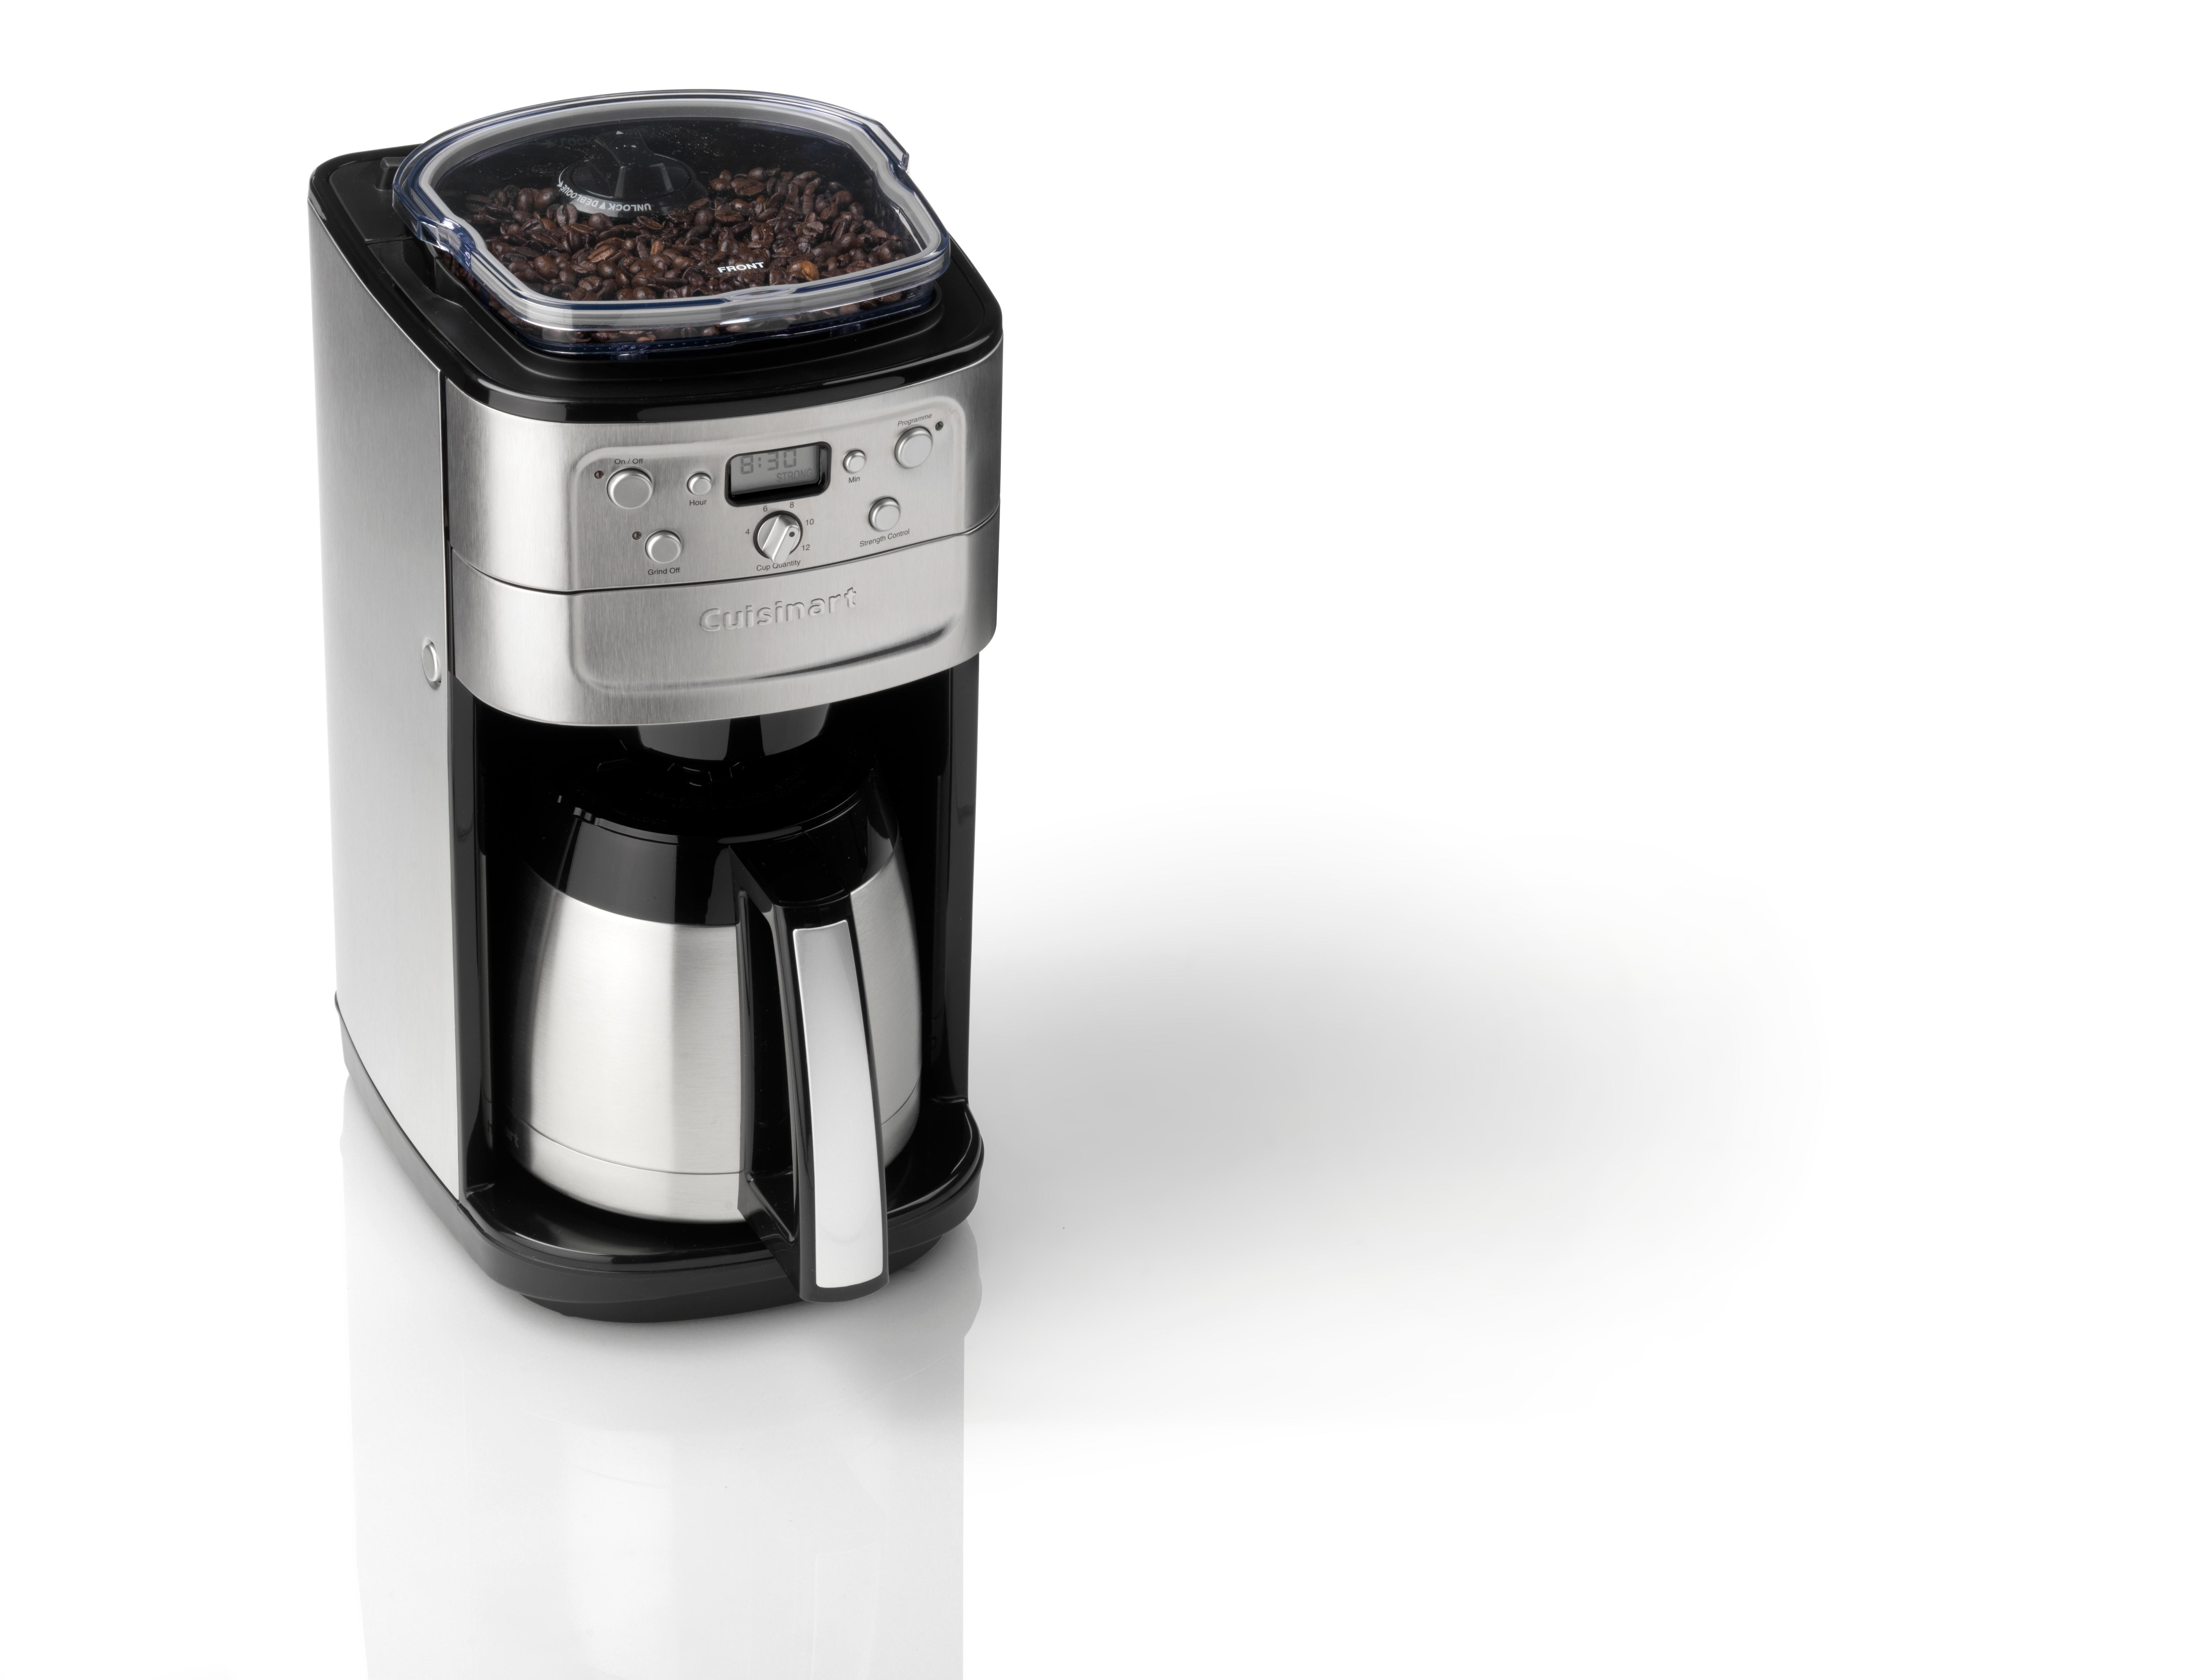 Cuisinart Grind And Brew Coffee Maker Keeps Beeping : Cuisinart Grind and Brew Plus: Amazon.co.uk: Kitchen & Home